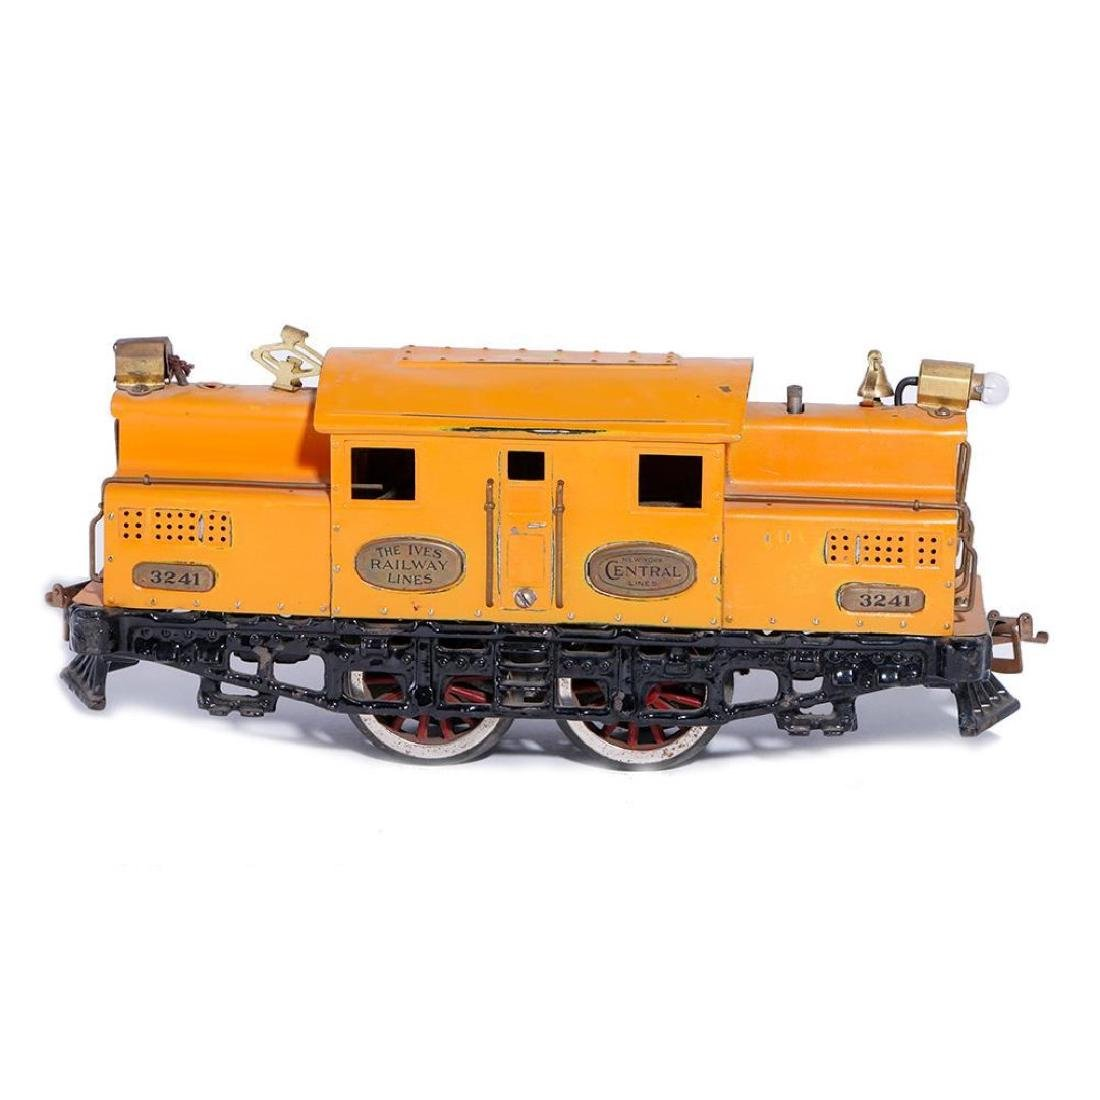 Ives Standard Gauge electric locomotive